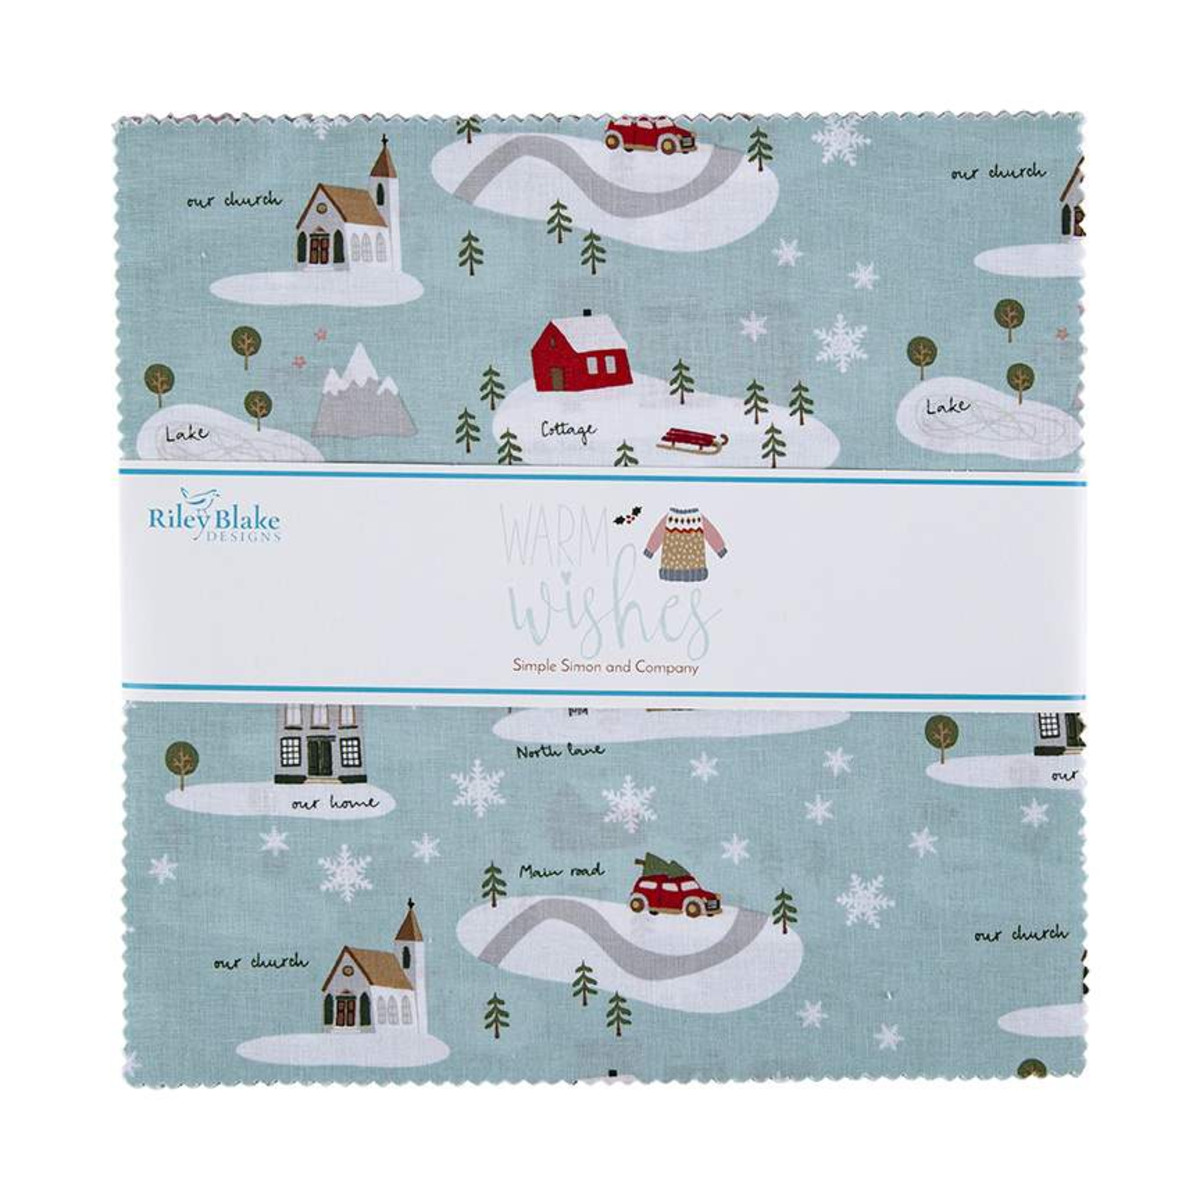 Riley Blake Layer Cake - Warm Wishes by Simple Simon and Company